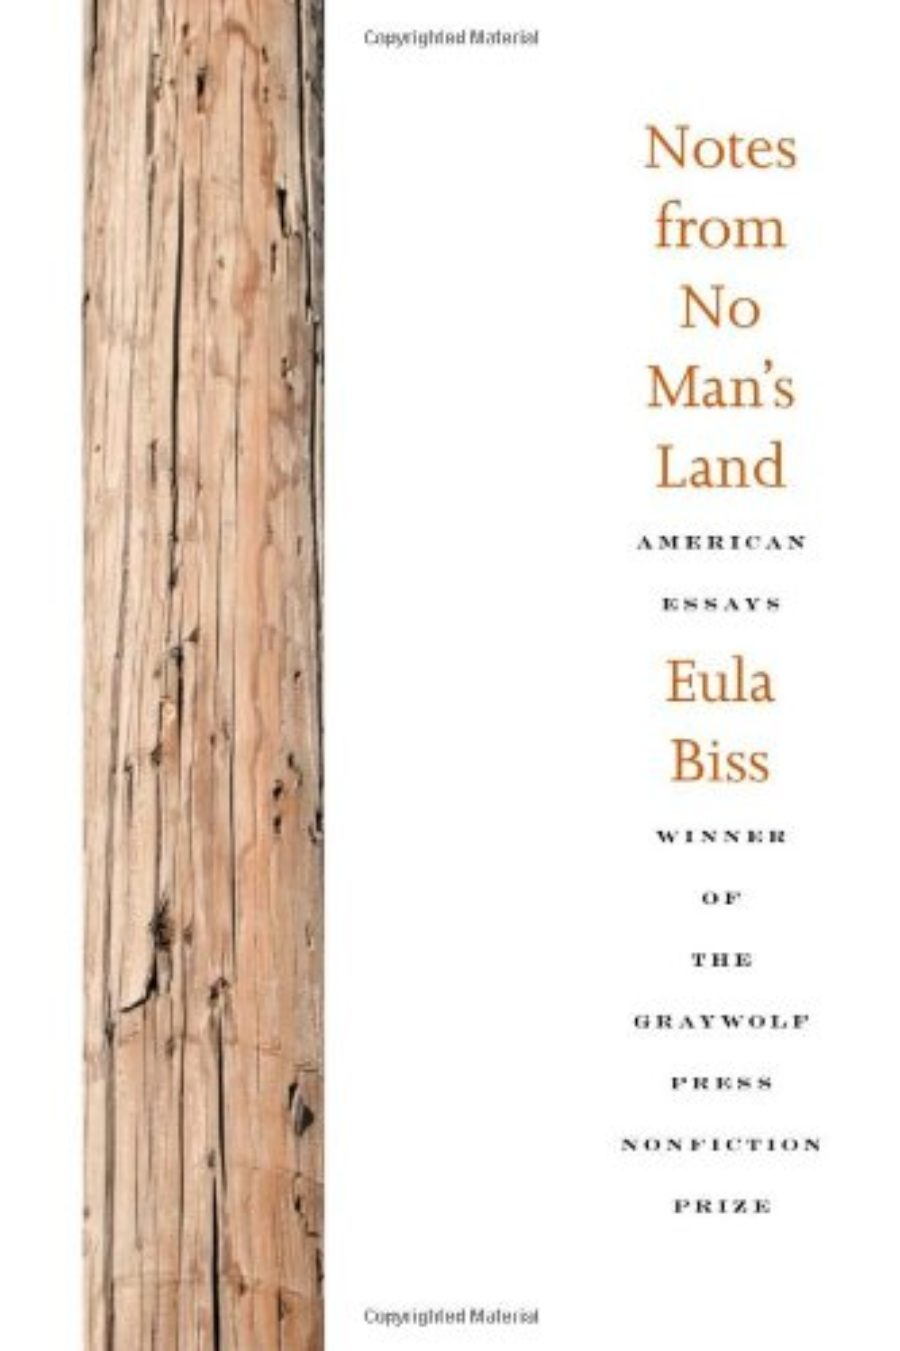 Cover of Notes from No Man's Land: American Essays